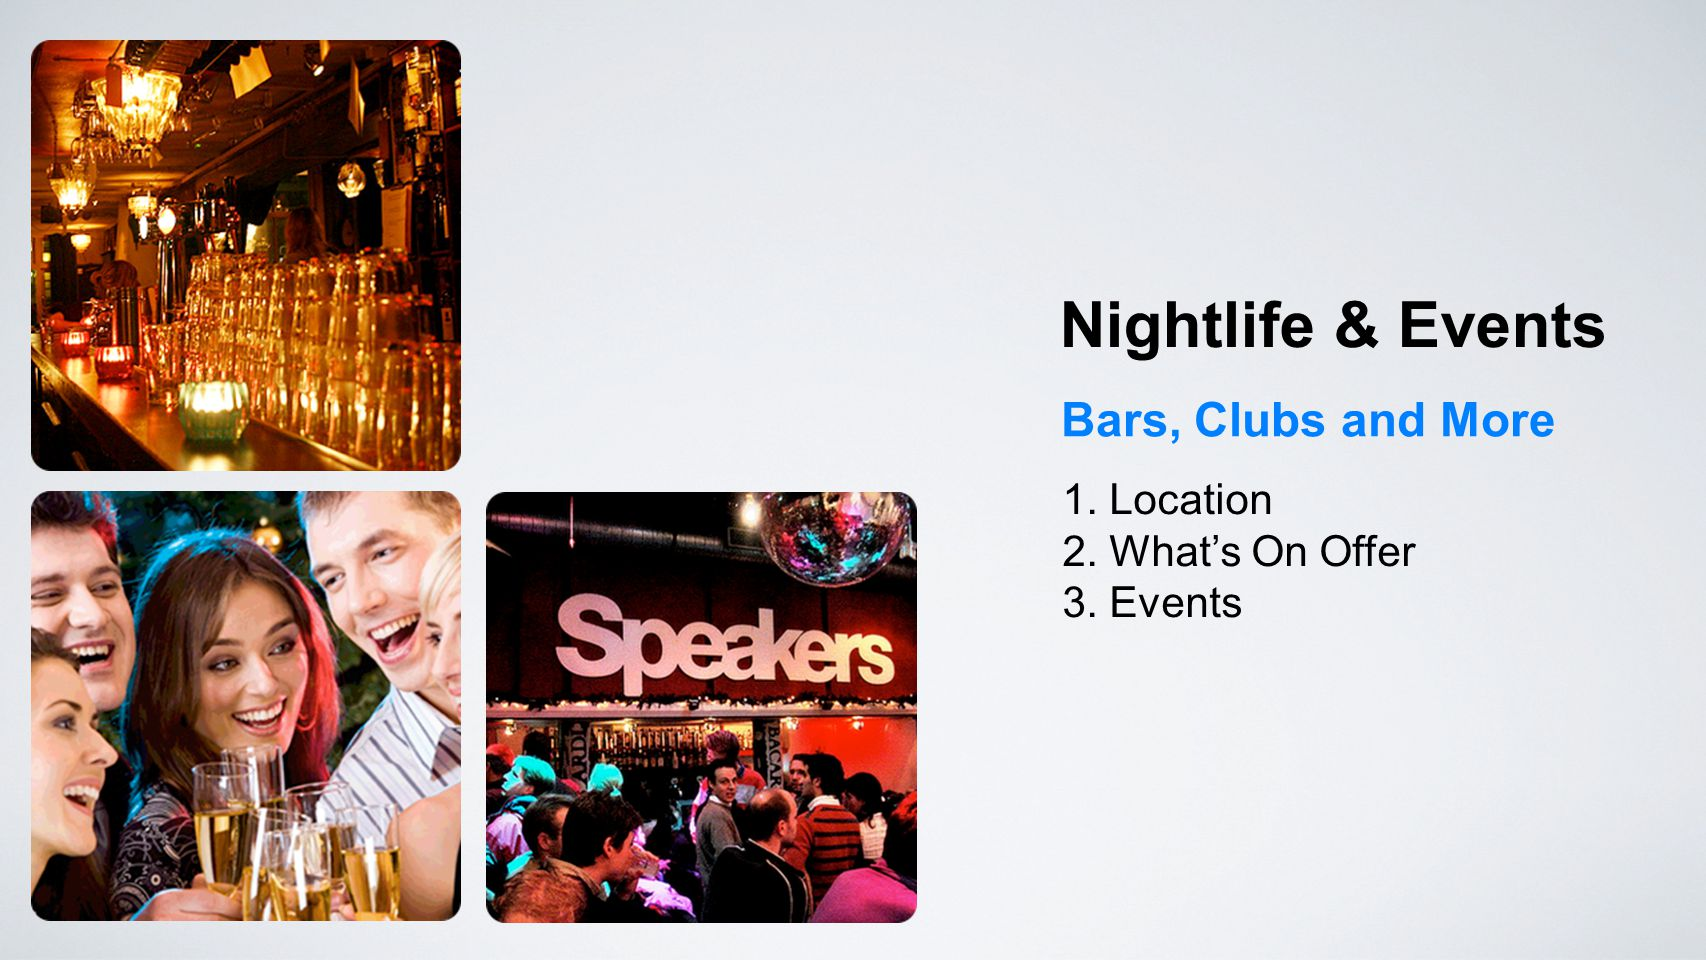 Bars, Clubs and More Nightlife & Events 1. Location 2. What's On Offer 3. Events